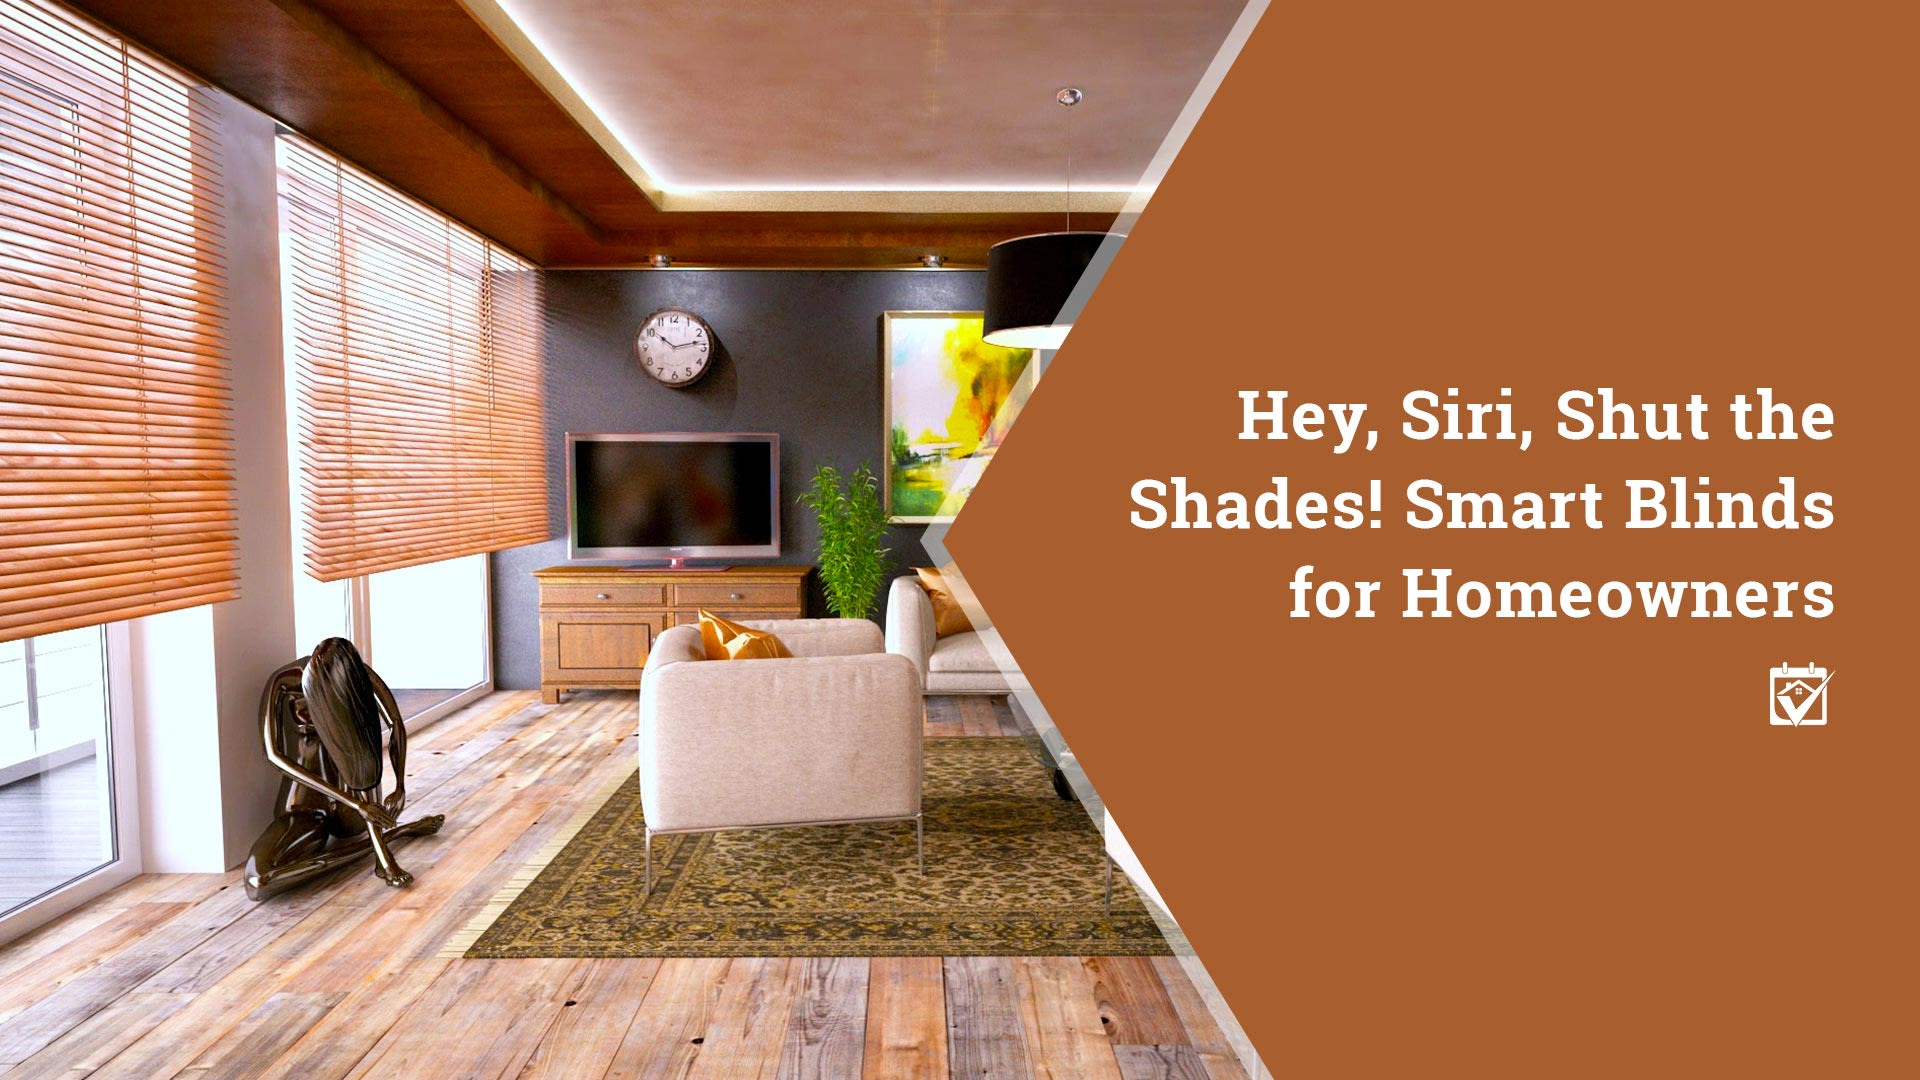 Hey, Siri, Shut the Shades! Smart Blinds for Homeowners